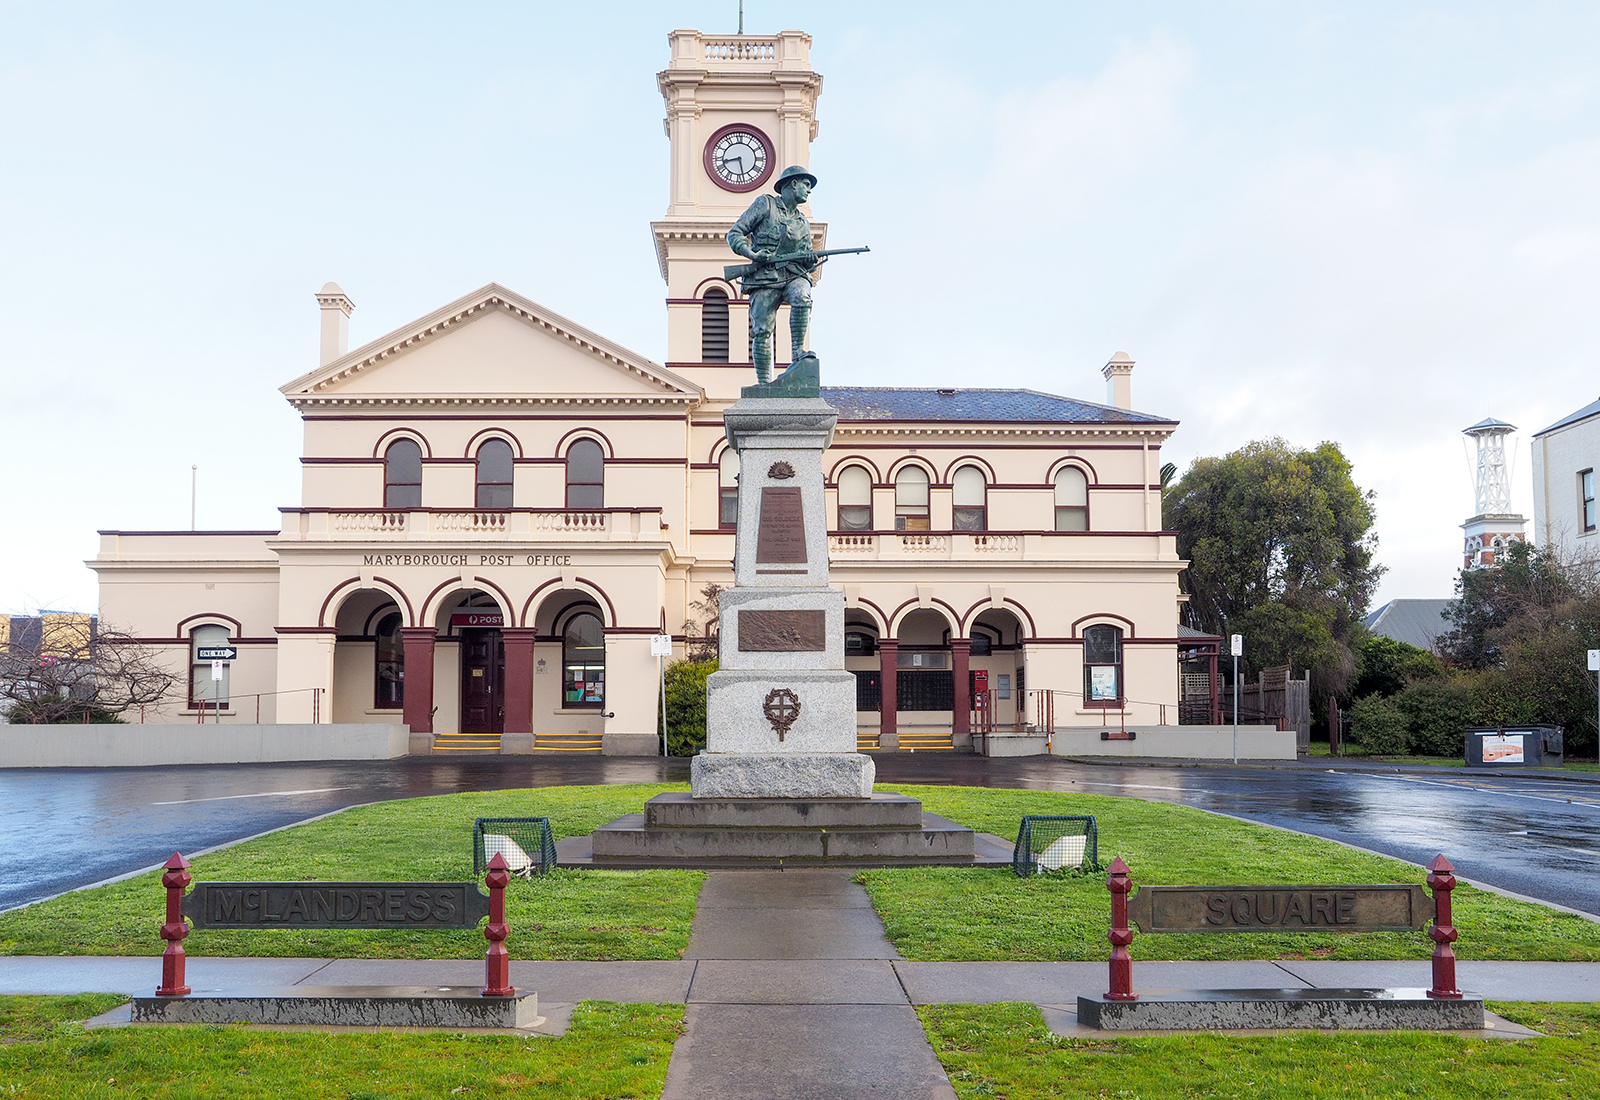 McLandress Square is a historic civic centre in Maryborough